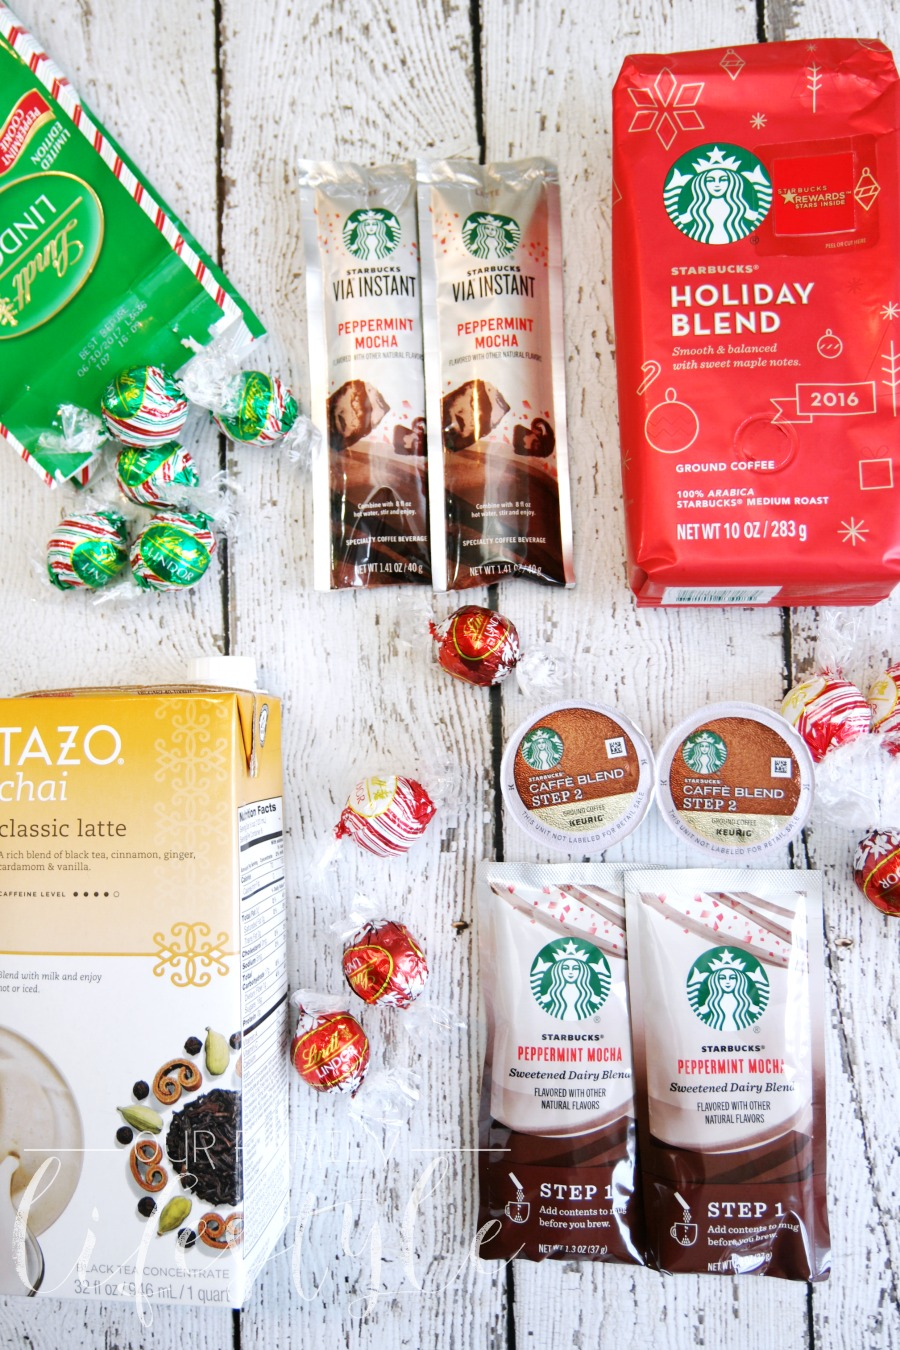 Starbucks and Lindt perfect holiday pairings